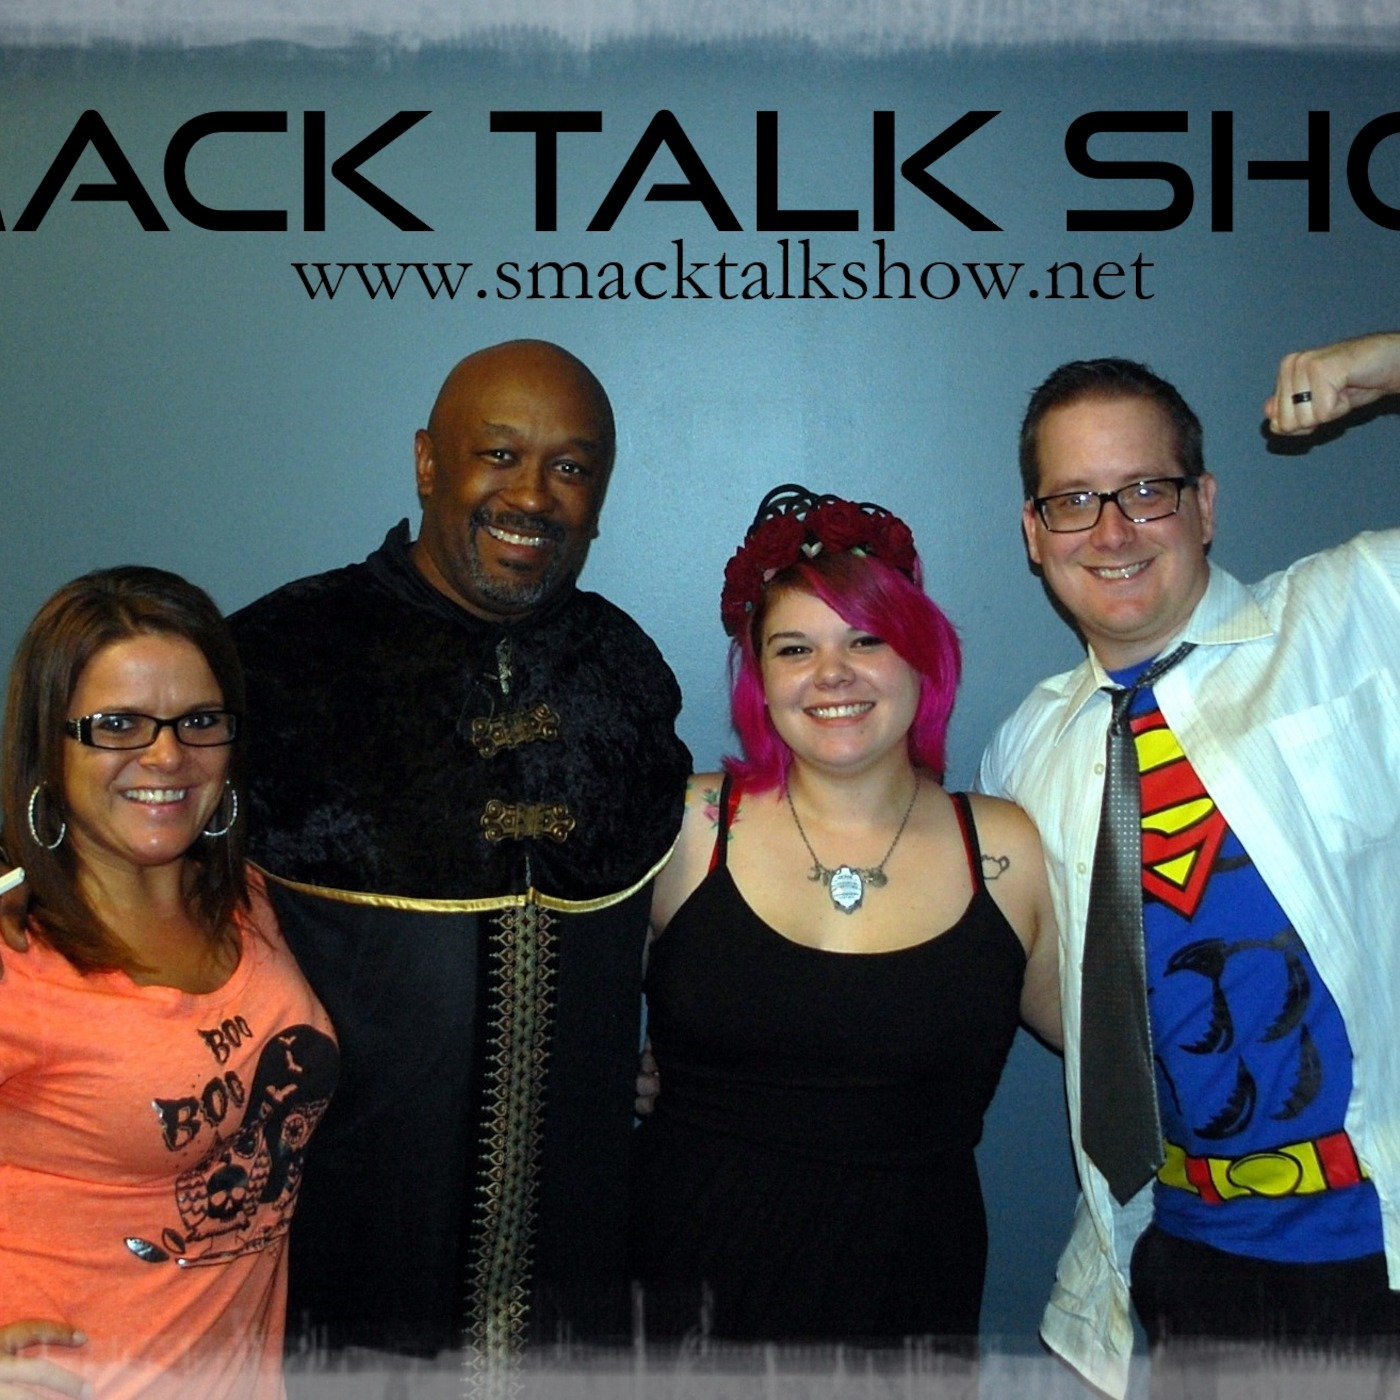 SmackTalk Show's Past Shows